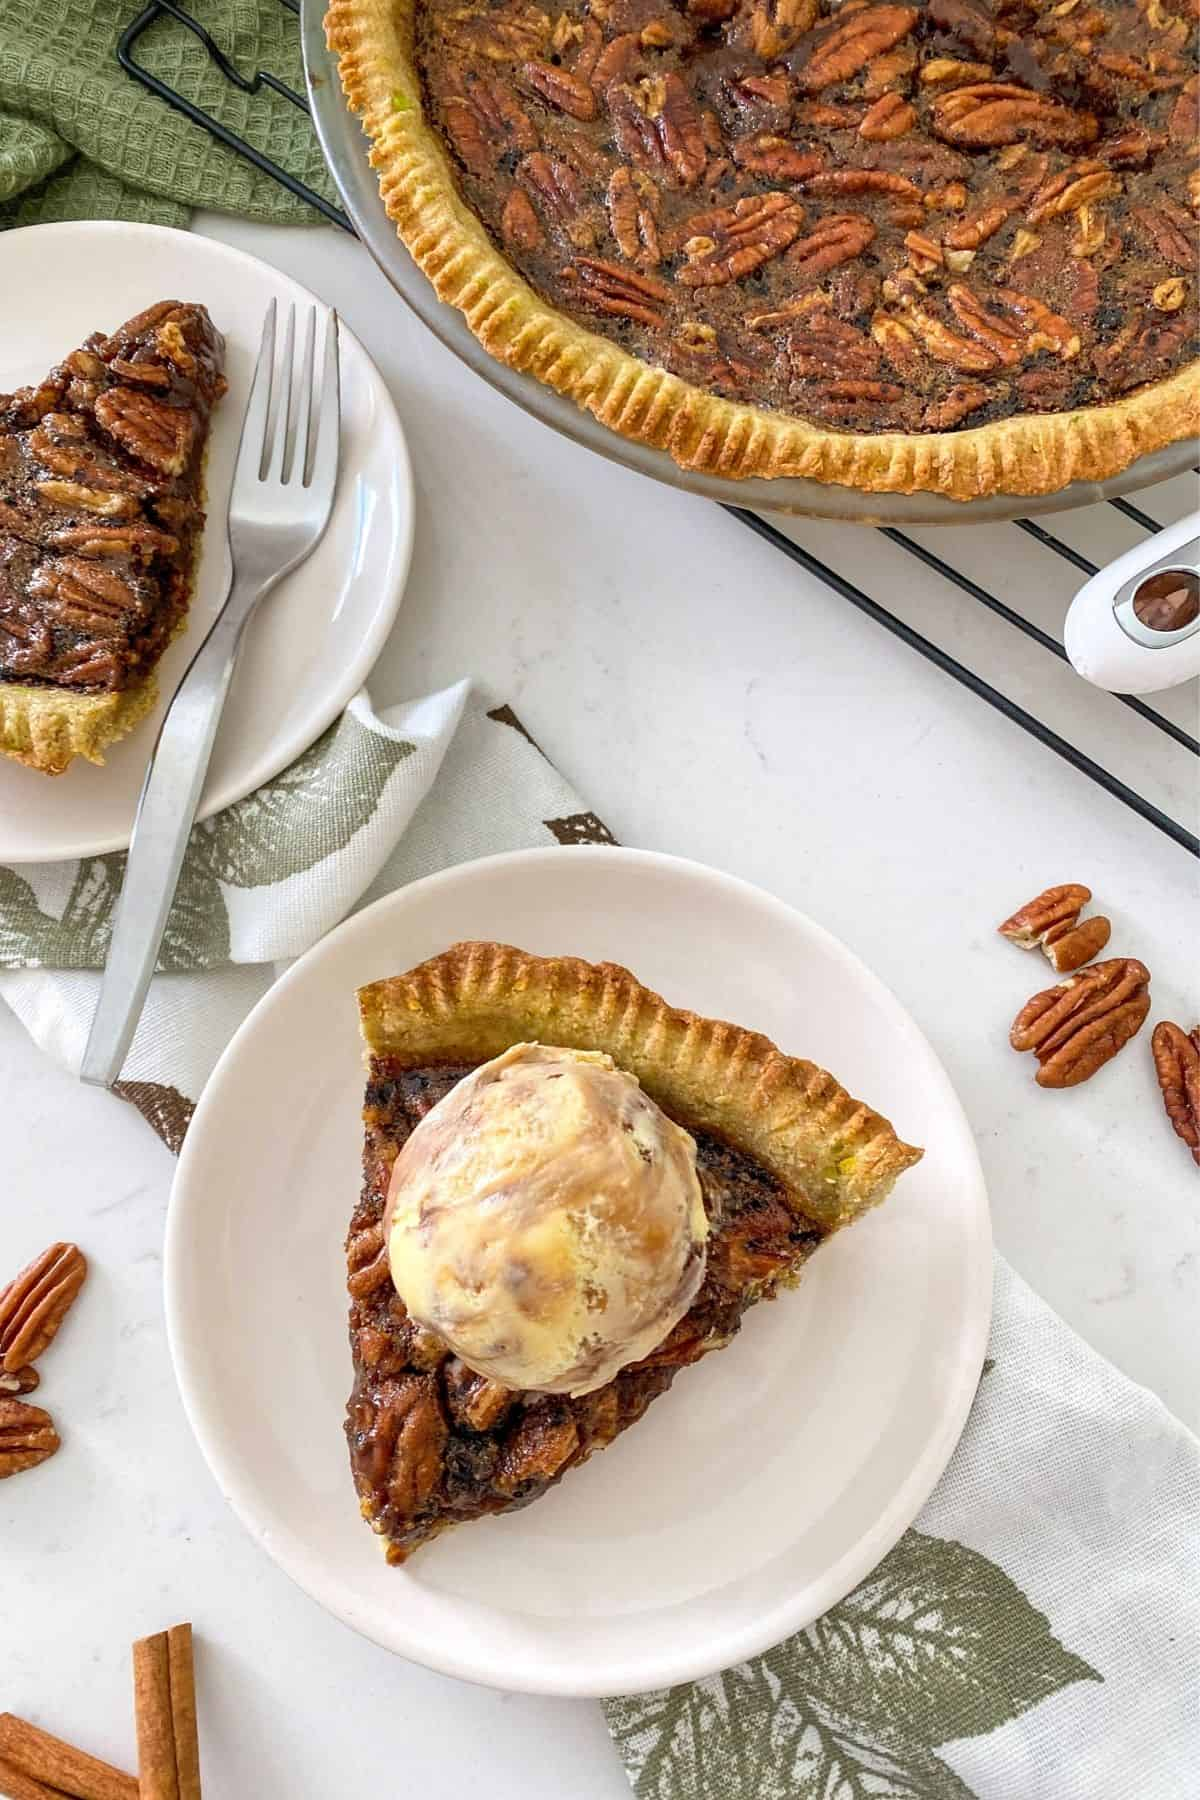 Pecan pie in pie plate with two slices of pie in small dessert plates and scoop of ice cream on top.